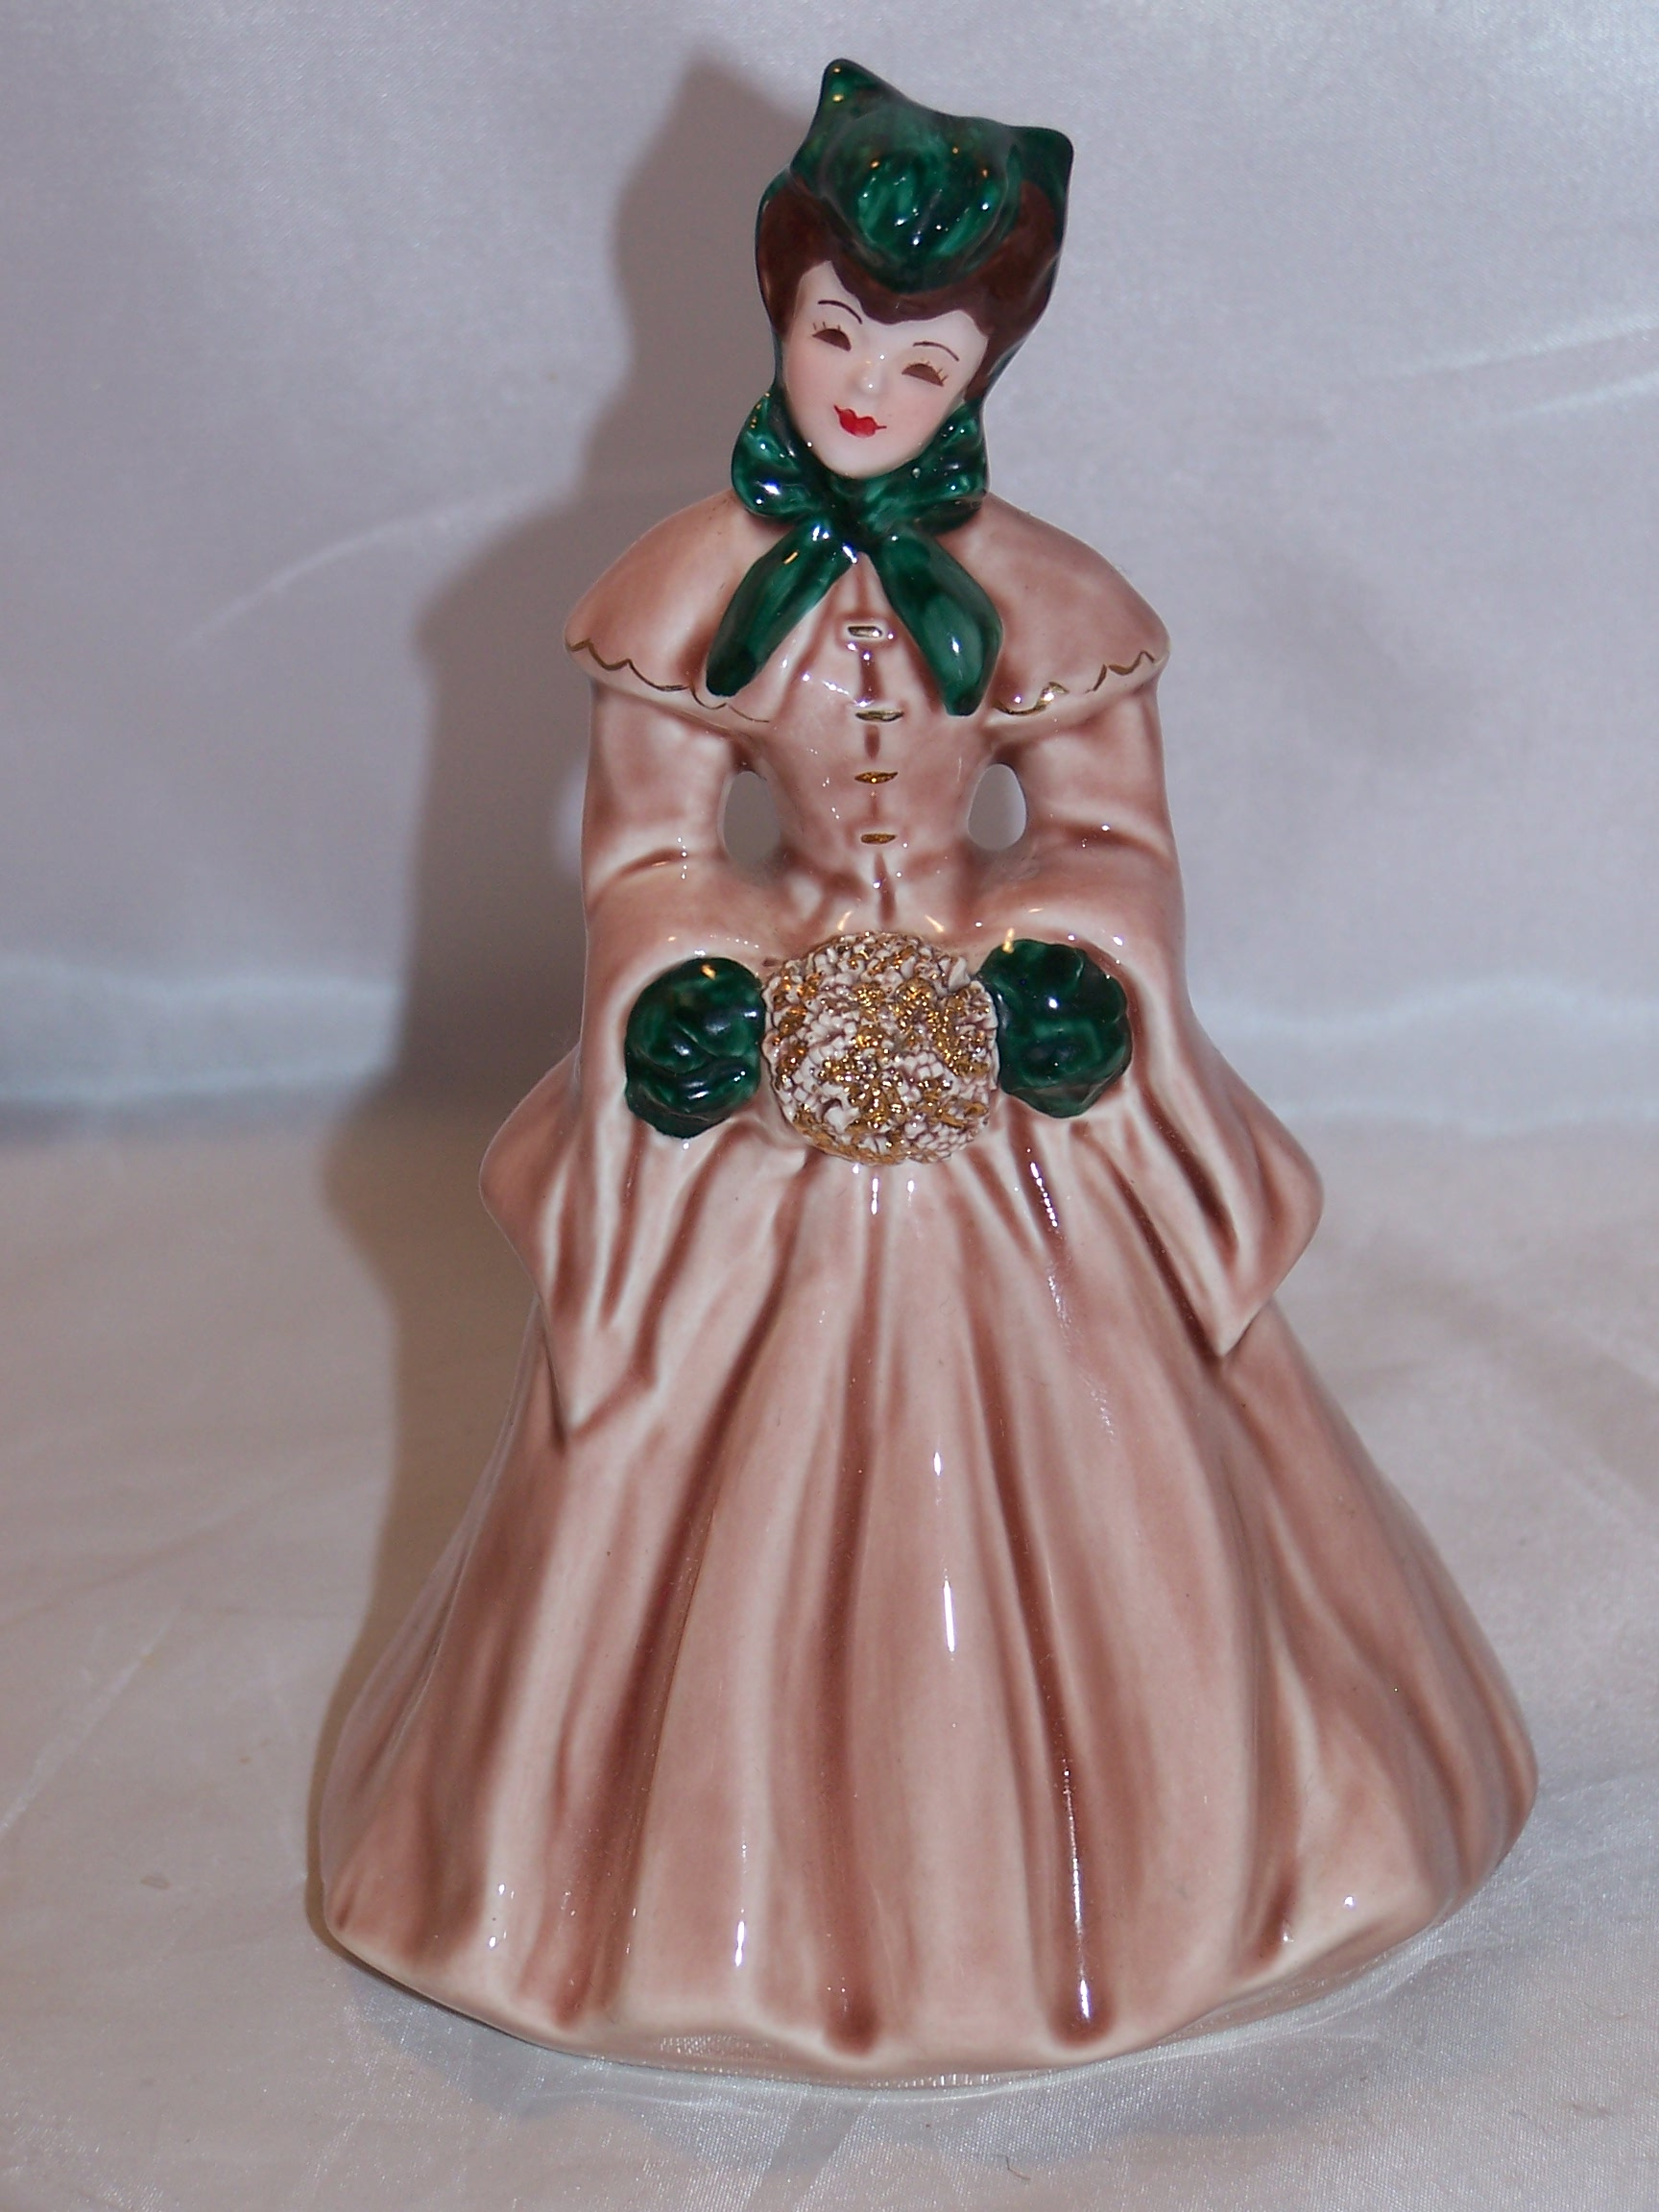 Florence Ceramics, Elaine, Victorian Lady in Winter Garb, California